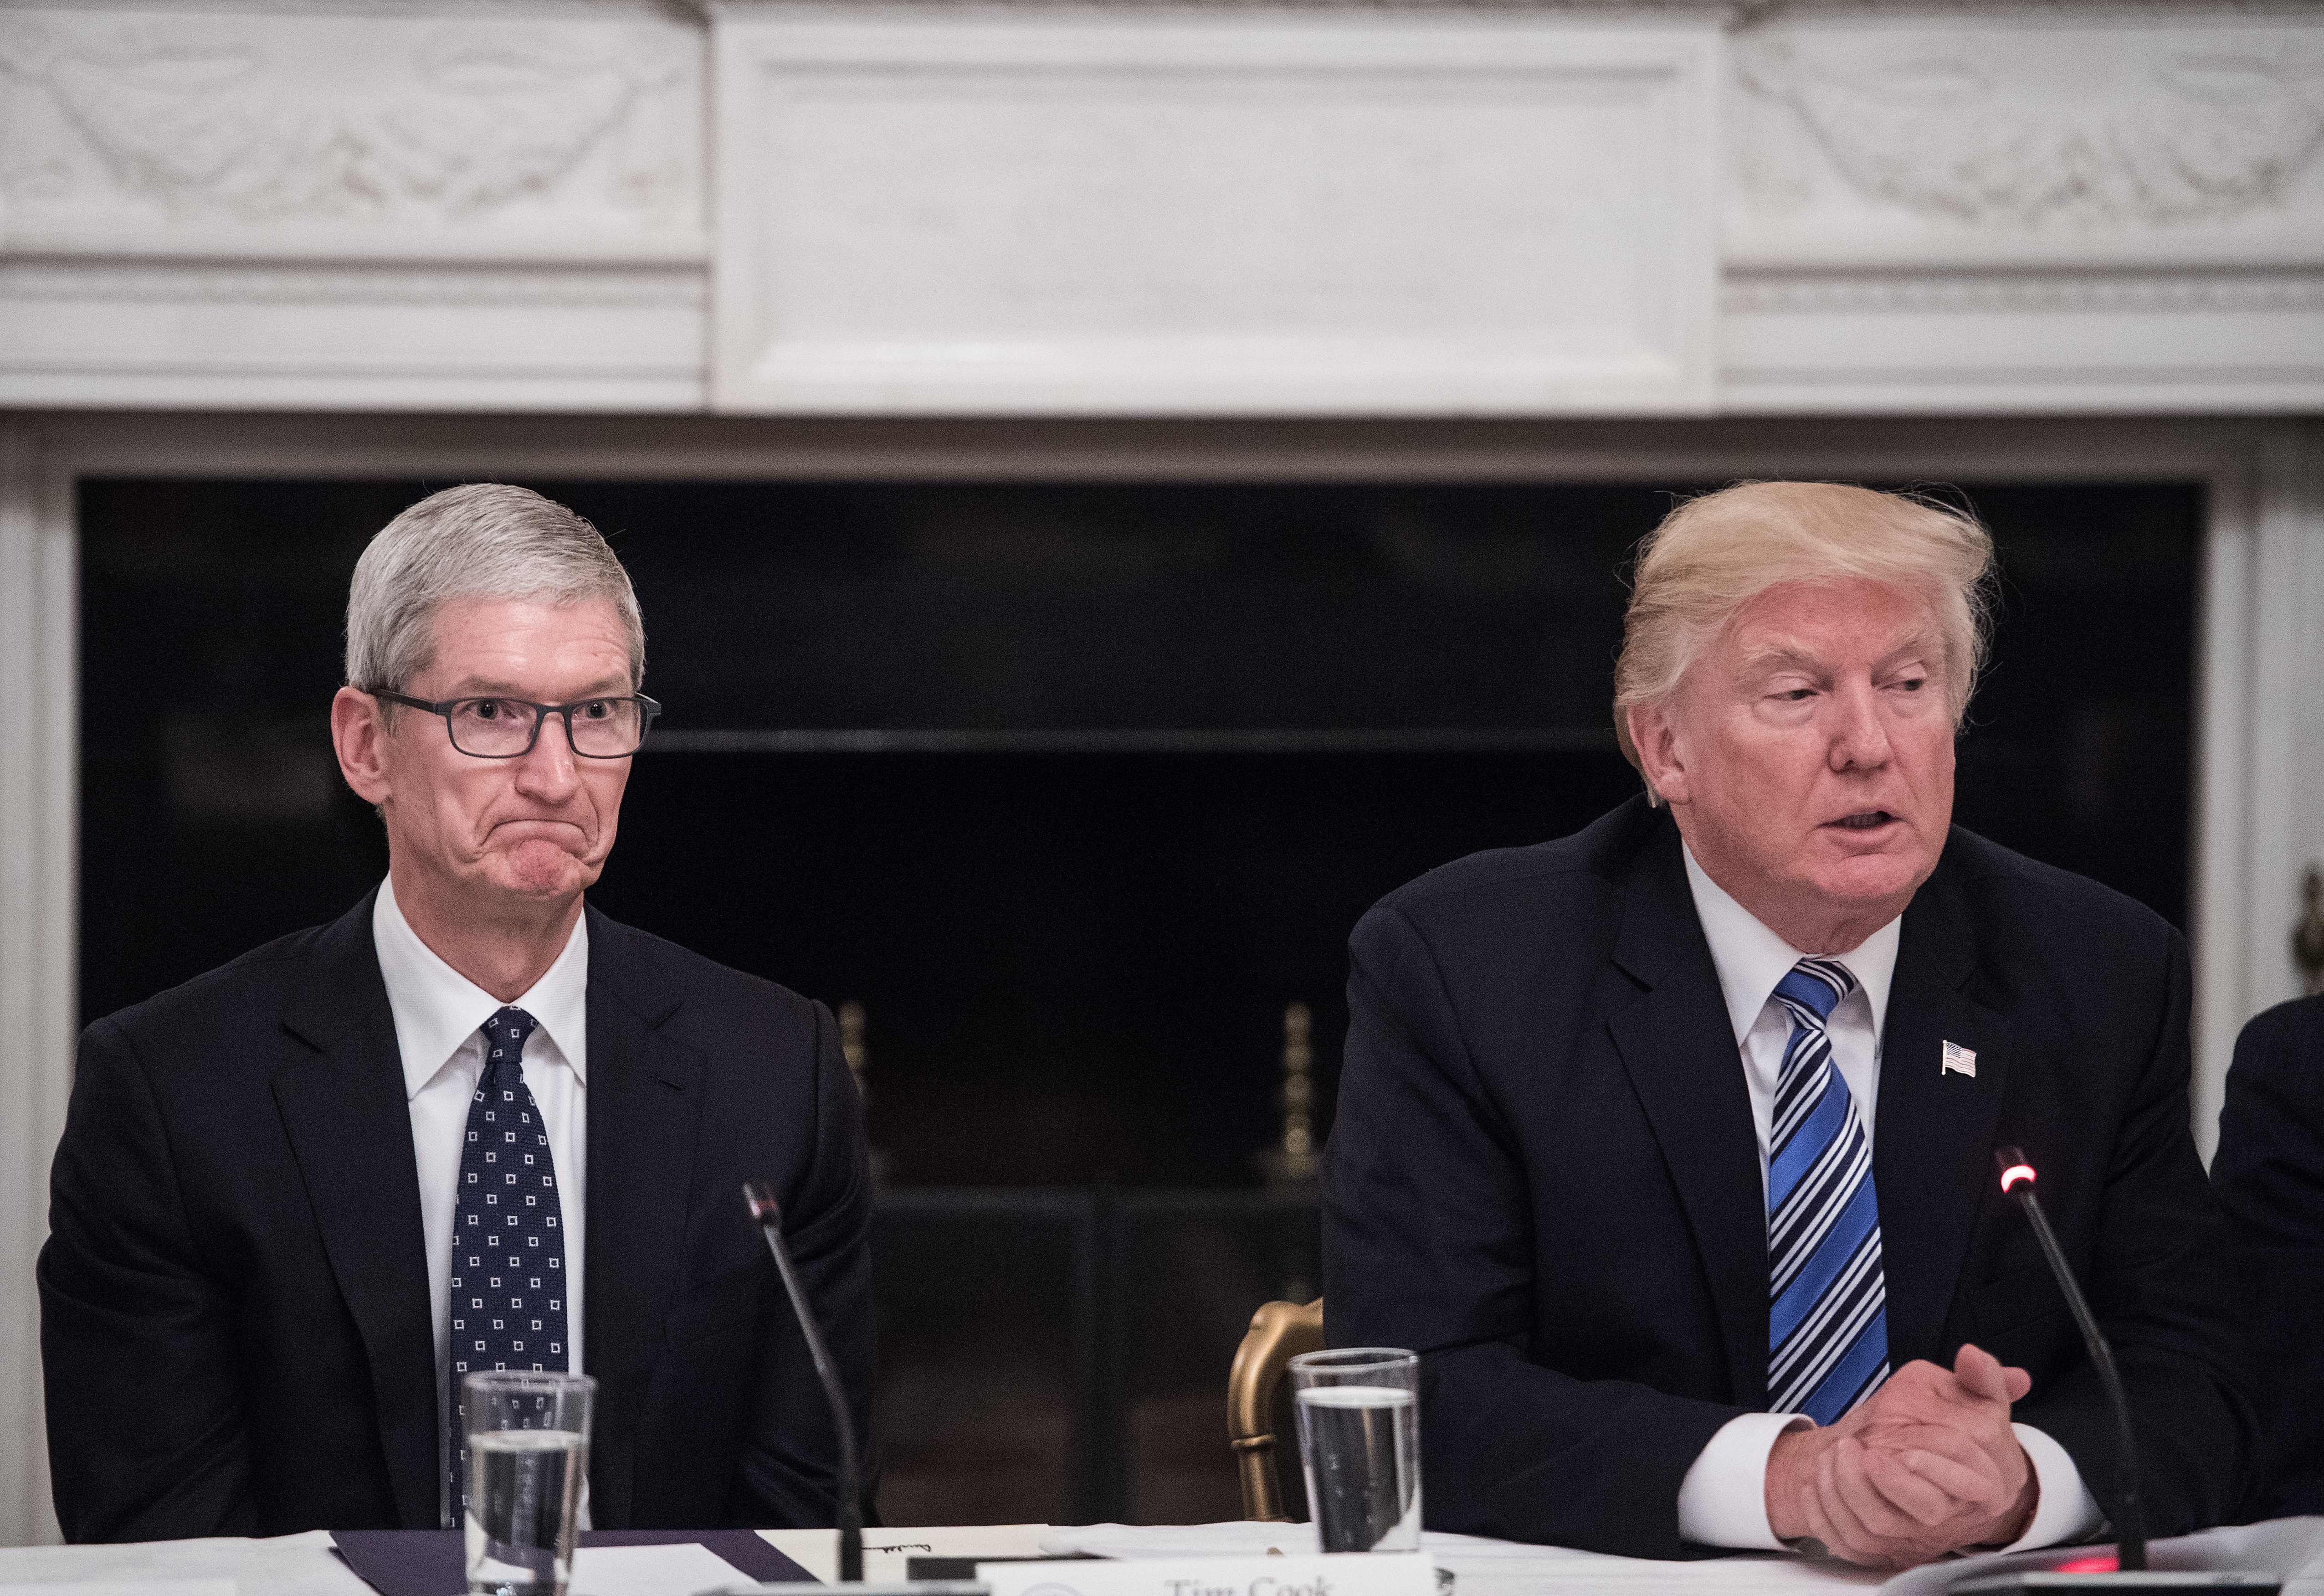 Apple CEO Tim Cook (L) listens to US President Donald Trump during an American Technology Council roundtable at the White House in Washington, DC, on June 19, 2017.